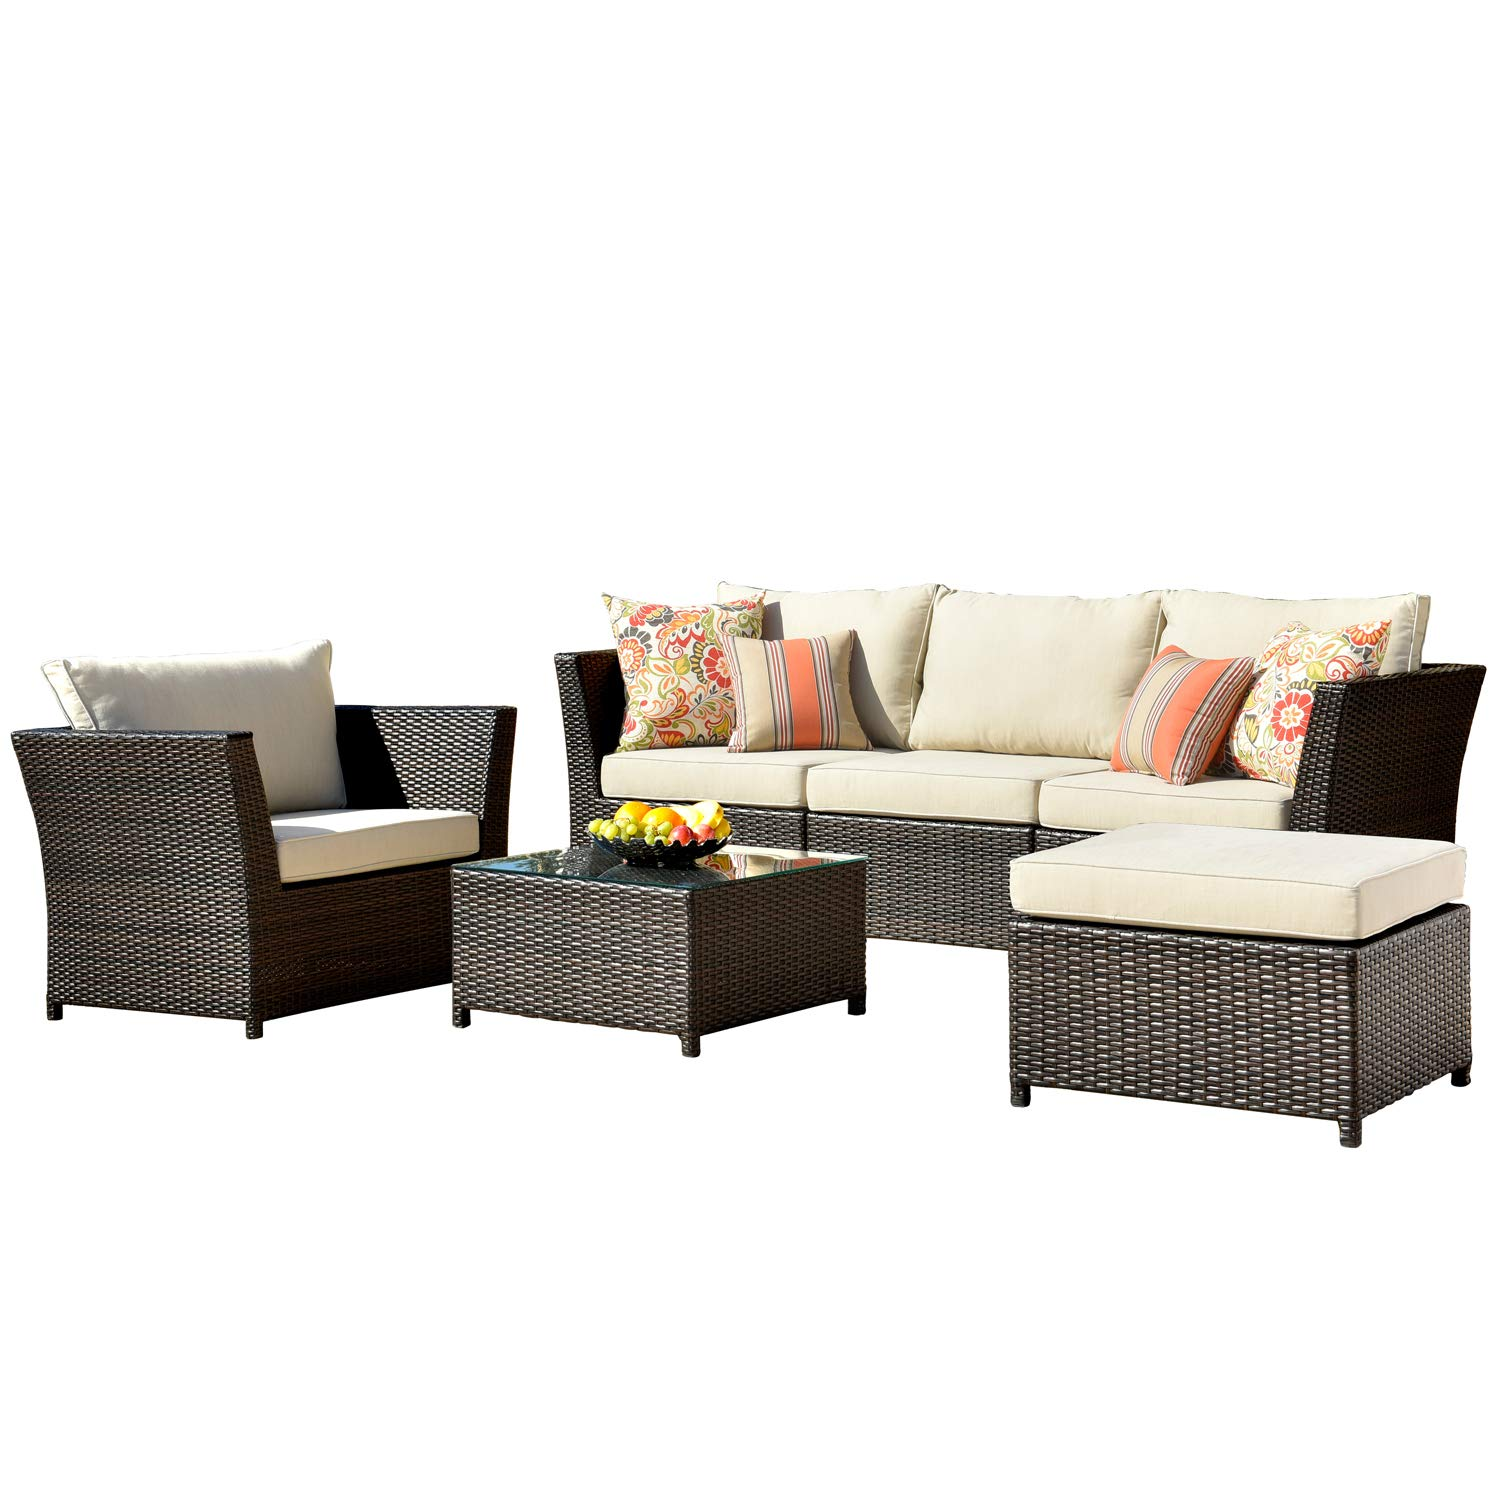 ovios Patio Furniture Set, Backyard Sofa Outdoor Furniture 6 Pcs Sets,PE Rattan Wicker sectional with 2 Pillows and Coffee Table, No Assembly Required,Brown